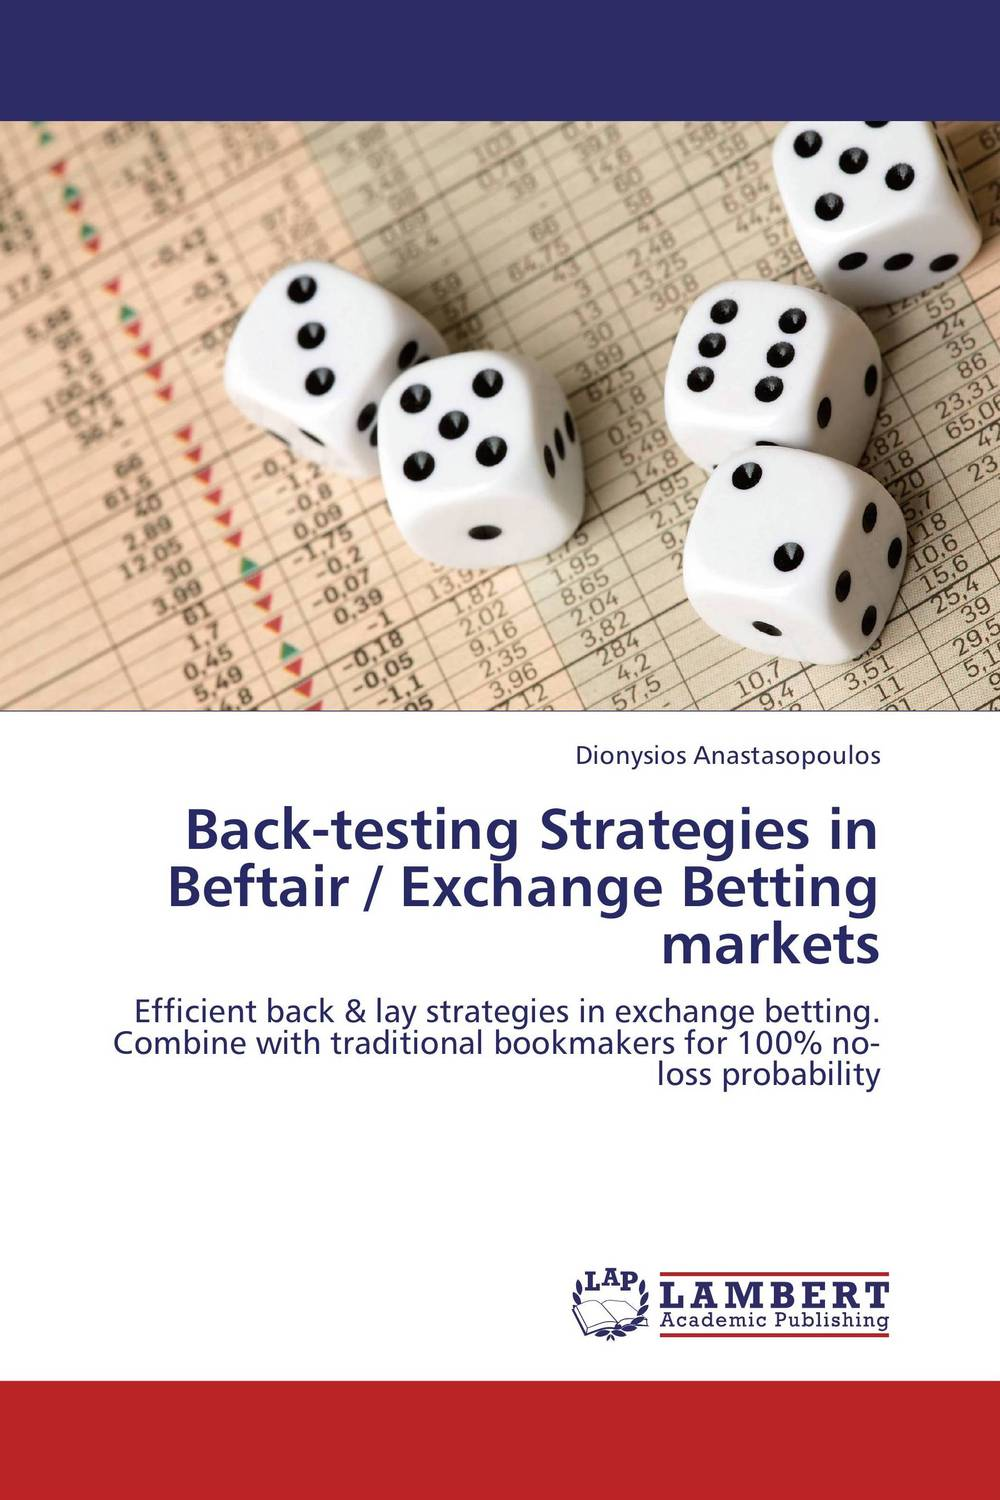 Back-testing Strategies in Beftair / Exchange Betting markets david land financial spread betting for dummies